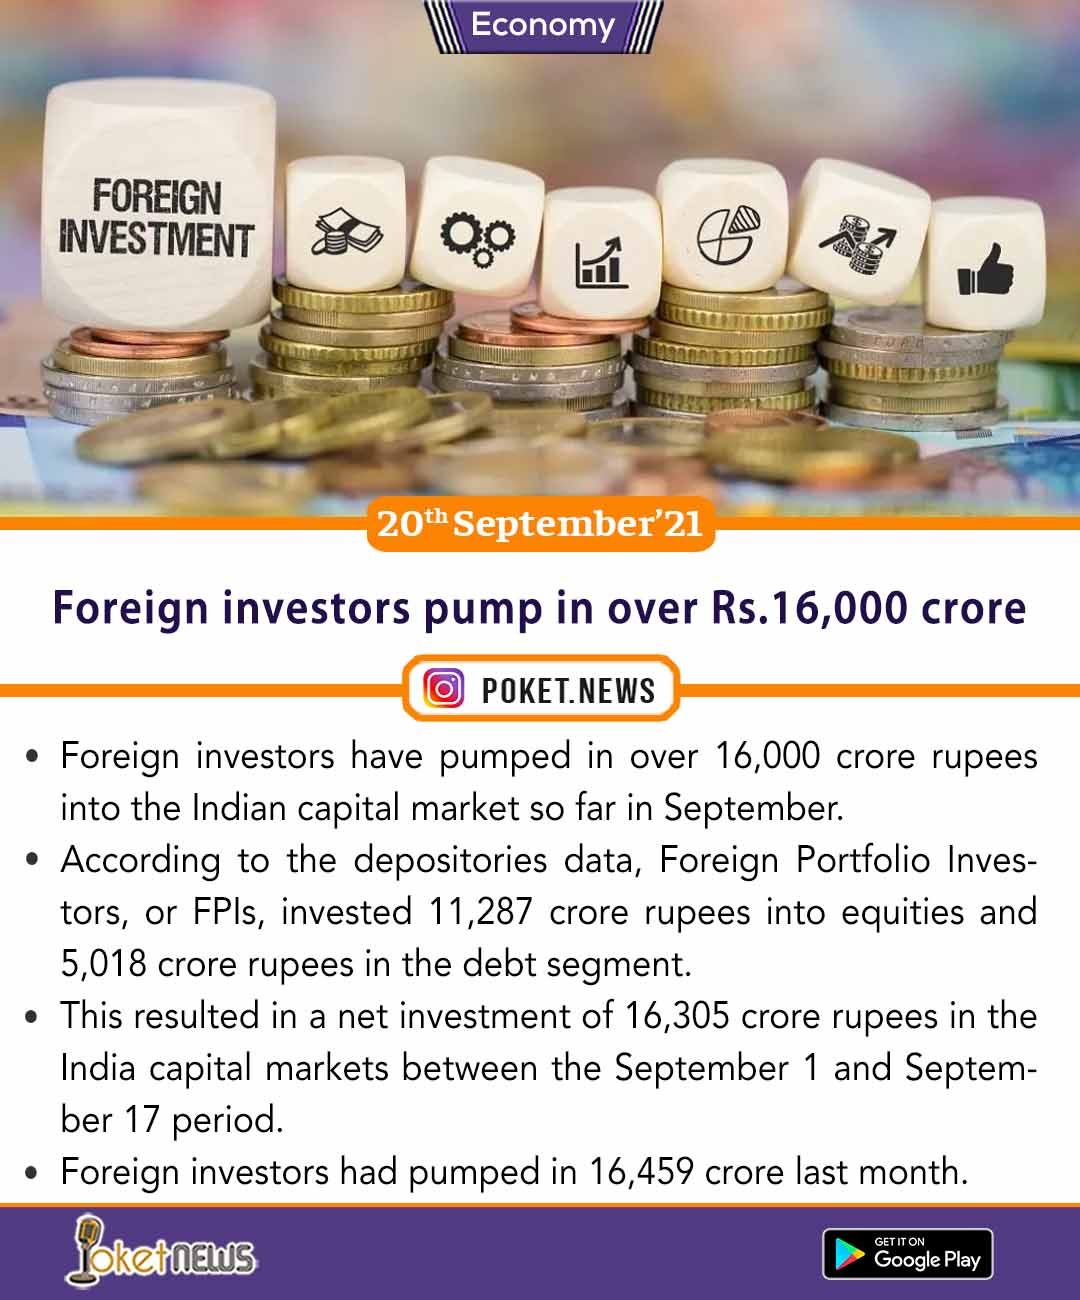 Foreign investors pump in over Rs.16,000 crore